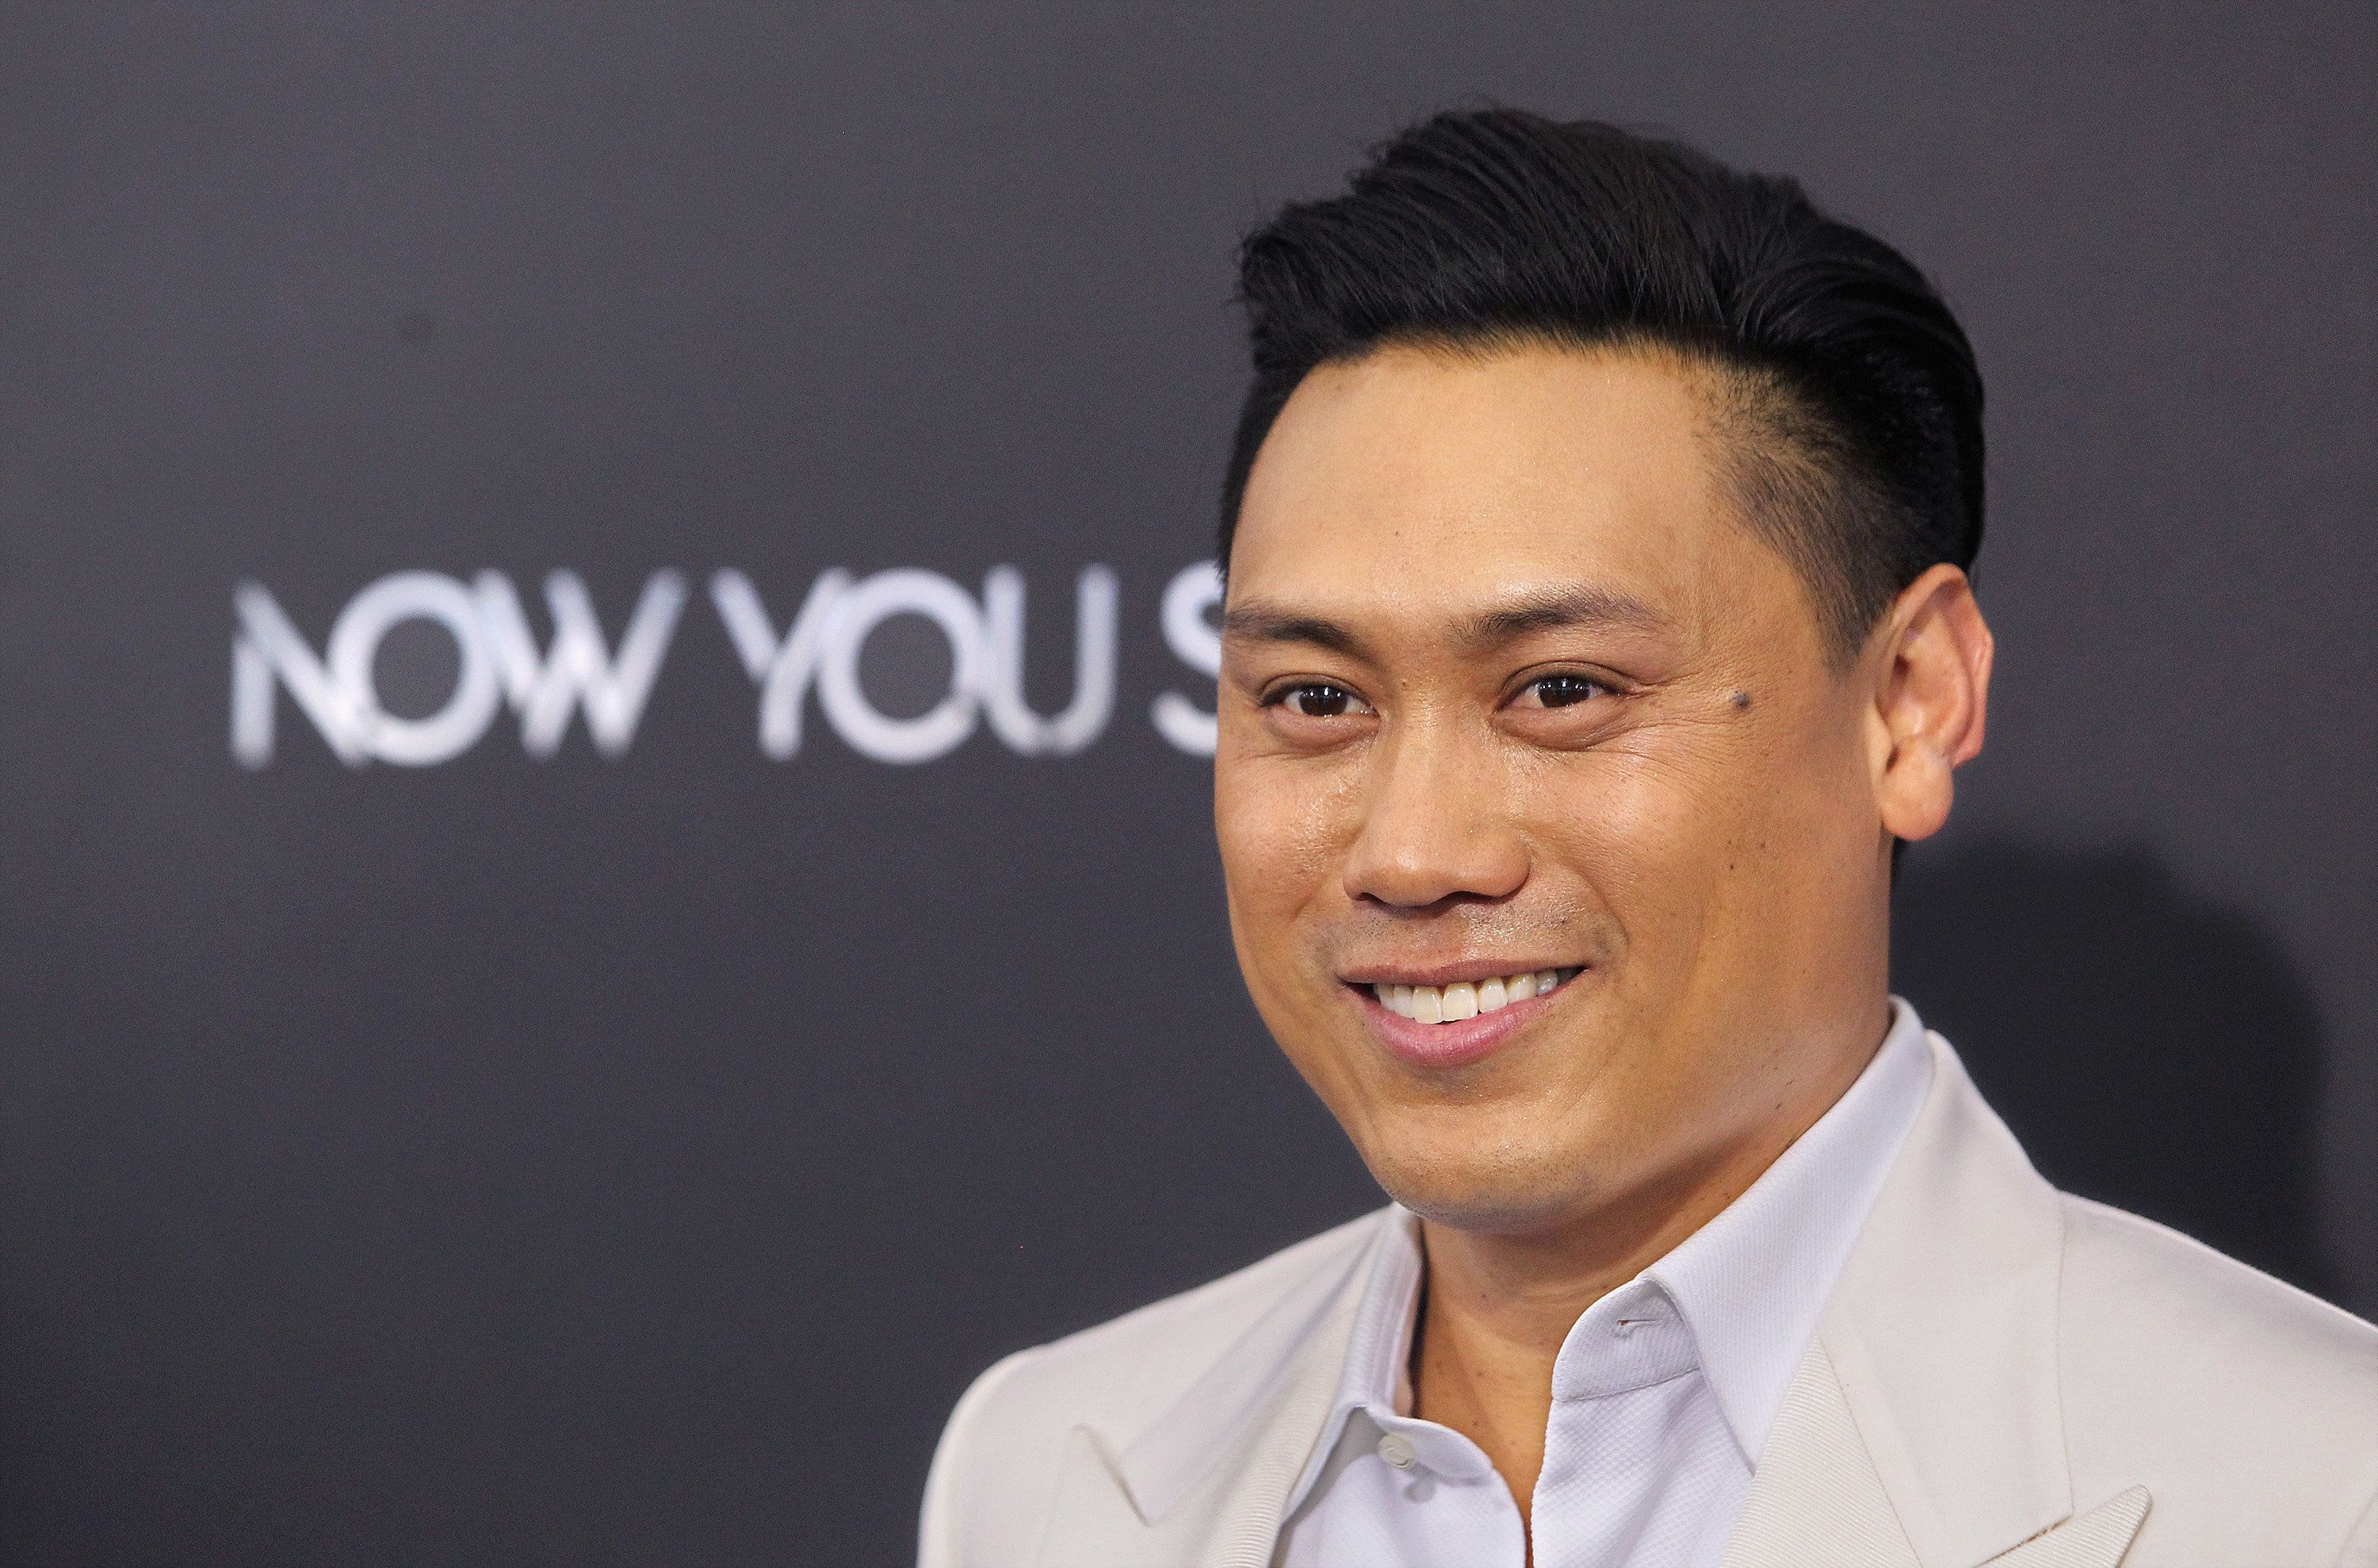 NEW YORK, NY - JUNE 06:  Director Jon M. Chu attends the 'Now You See Me 2' world premiere at AMC Loews Lincoln Square 13 theater on June 6, 2016 in New York City.  (Photo by Jim Spellman/WireImage)